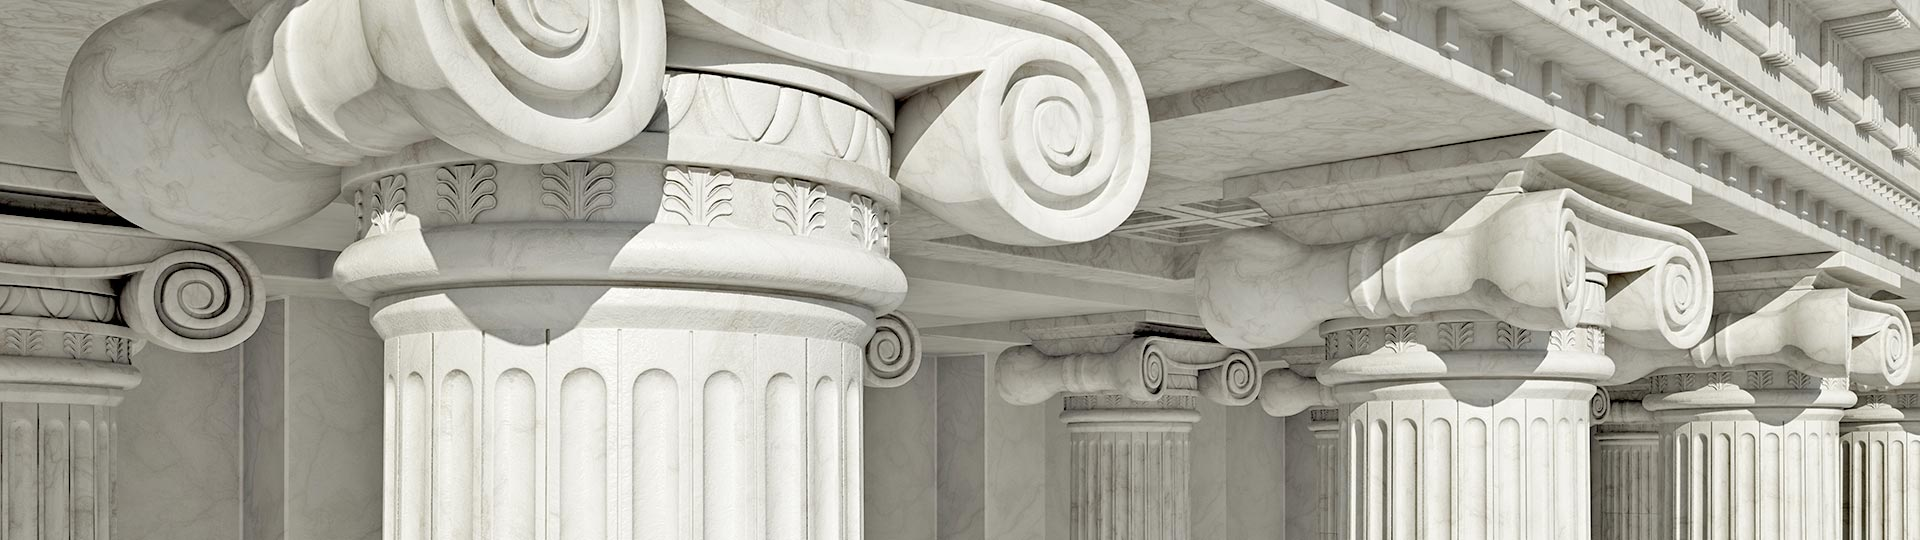 the capital part of a column